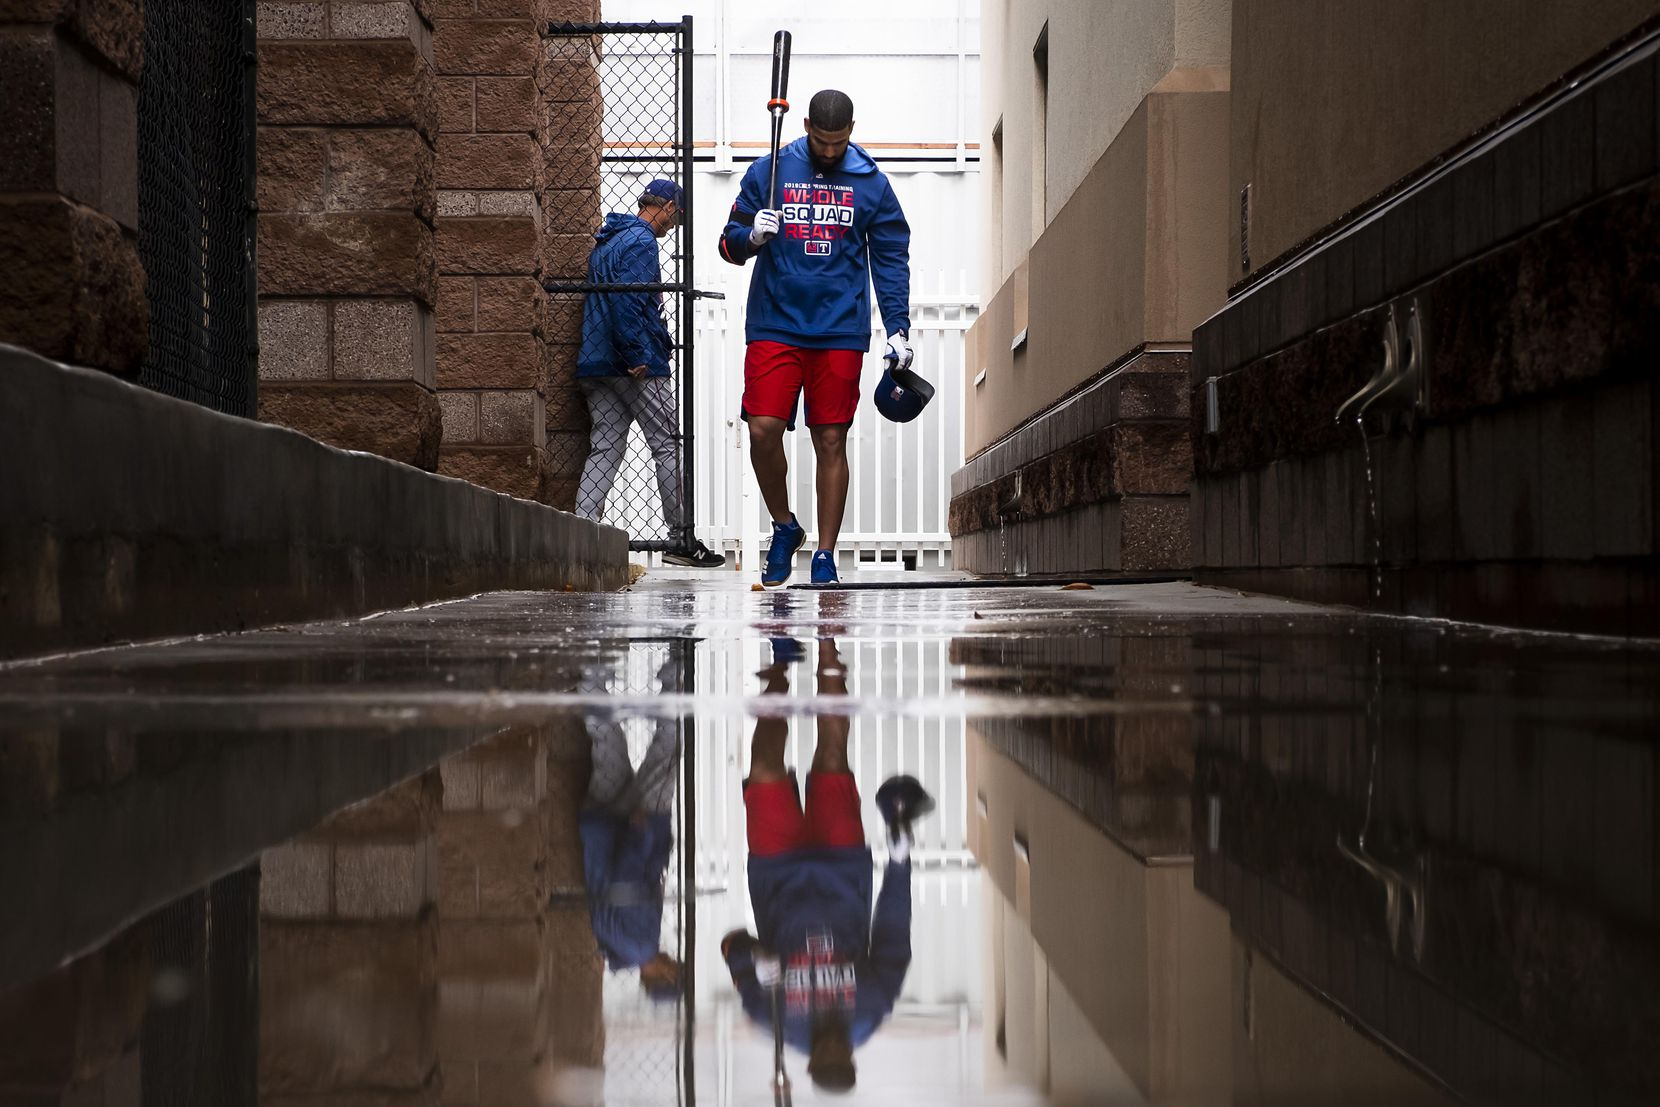 Texas Rangers outfielder Nomar Mazara walks through puddles as he heads from the batting cages to the clubhouse on Feb. 21 at the team's spring training facility in Surprise, Ariz.